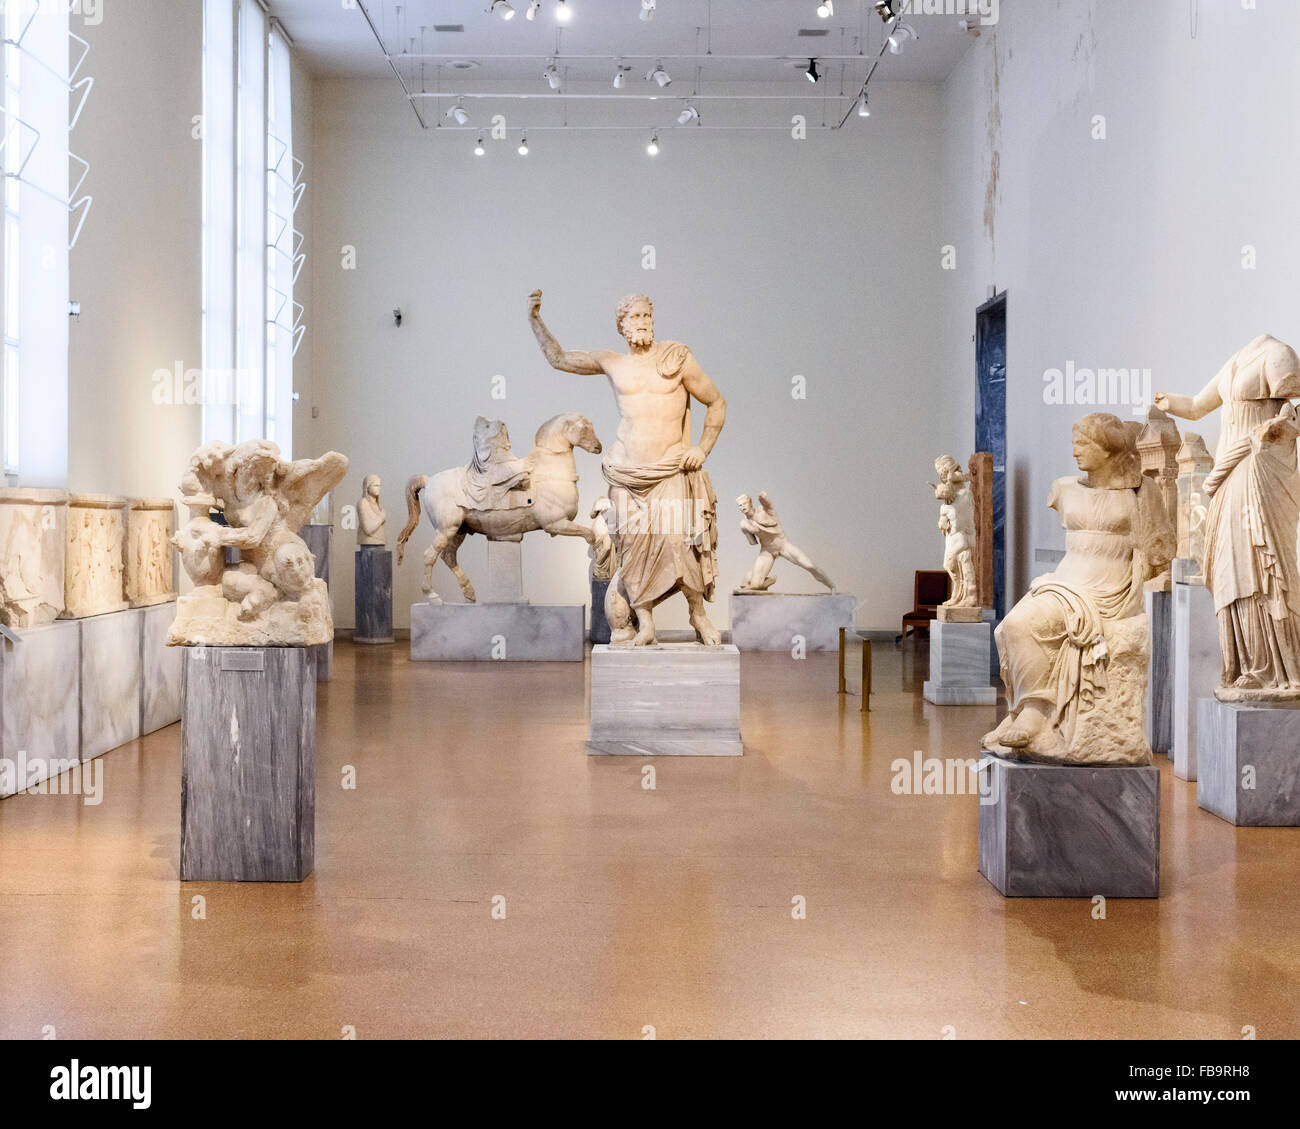 The National Archeological Museum of Athens. Institutions of Athens, Athens, Greece. Architect: N/A, 2015. Stock Photo